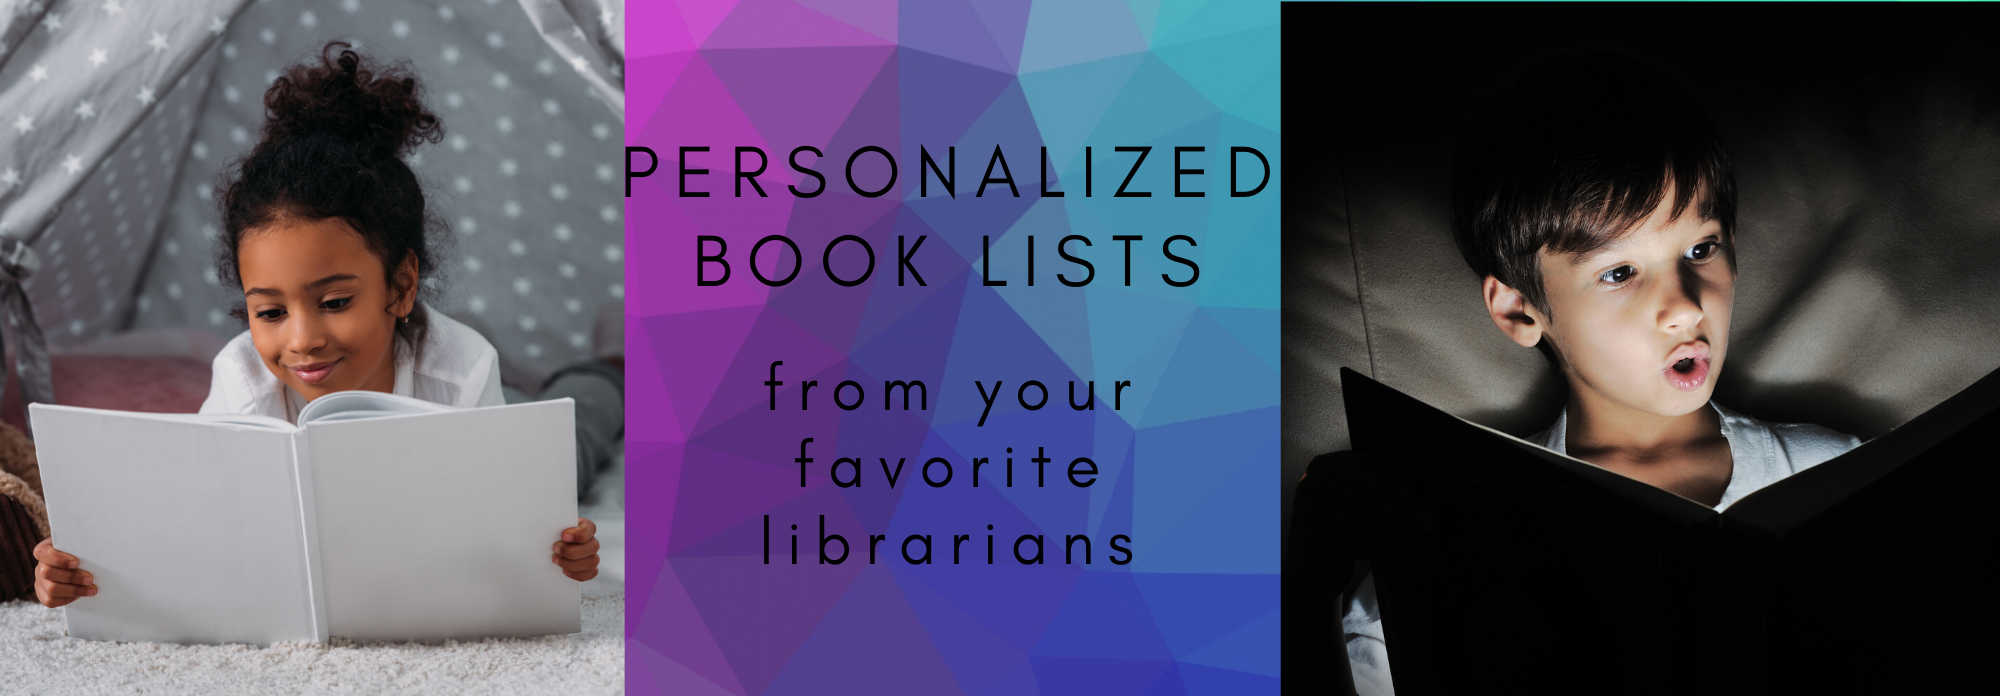 Personalized Book Lists from your favorite librarians -- link to google form